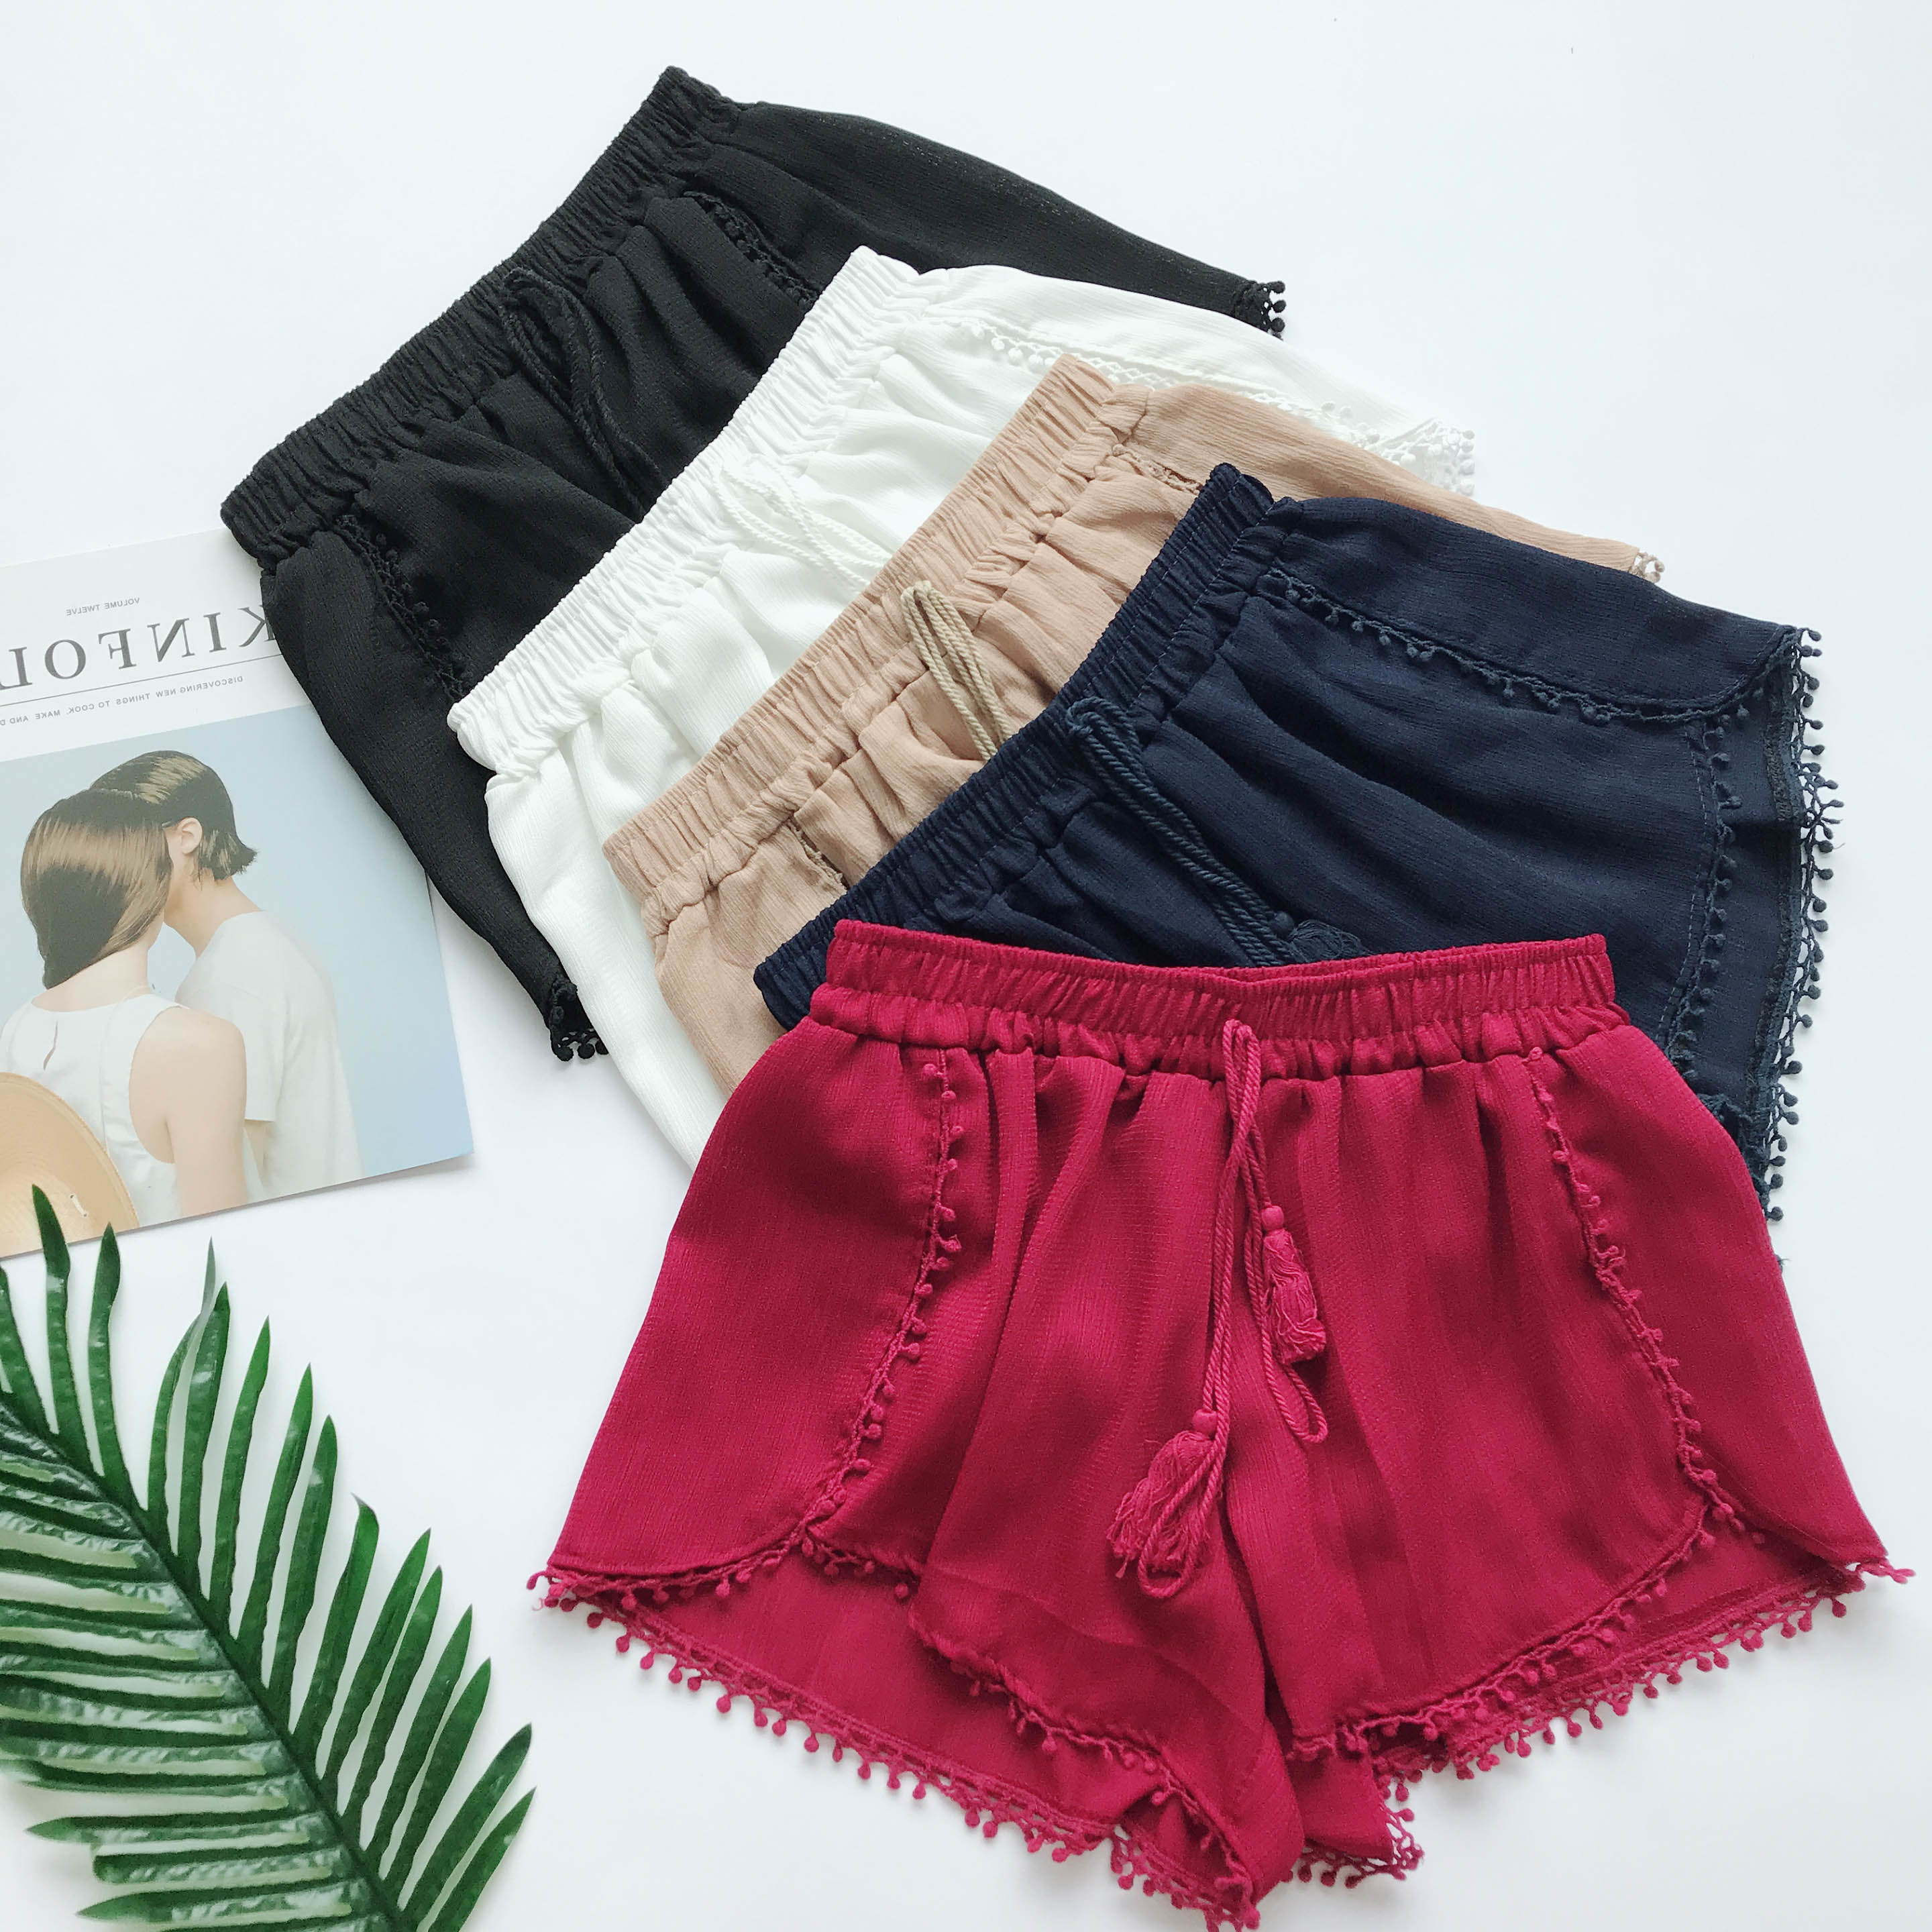 Summer Newest Style Fashion Vintage Elastic High Waist Female Chiffon Shorts Women Casual Shorts Boho Beach Trousers Girls Short